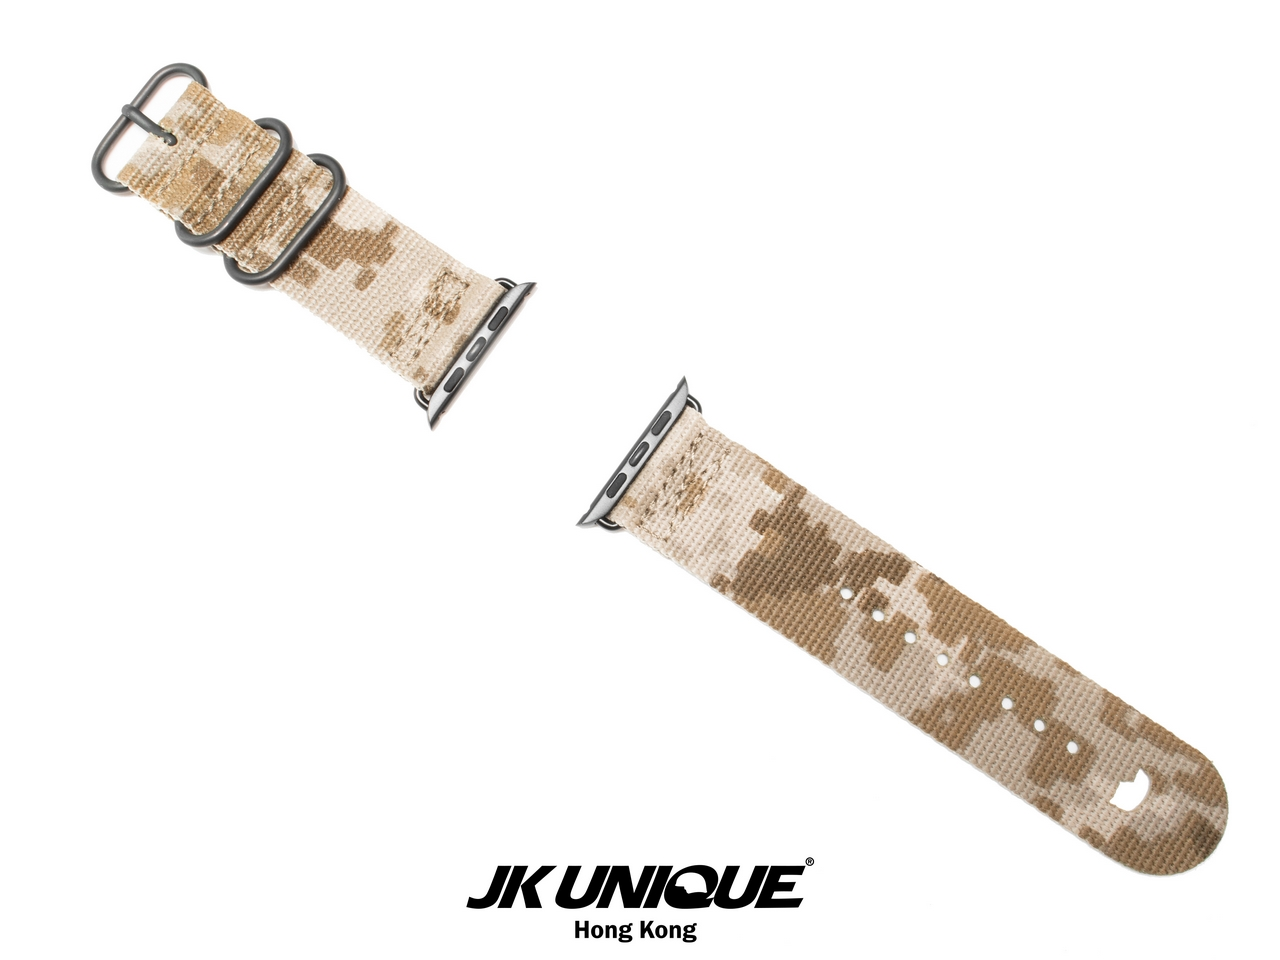 JK-UNIQUE-CAMO-NATO-Apple-Watch-Strap-42mm-BK-AOR1-1 (1280).jpg